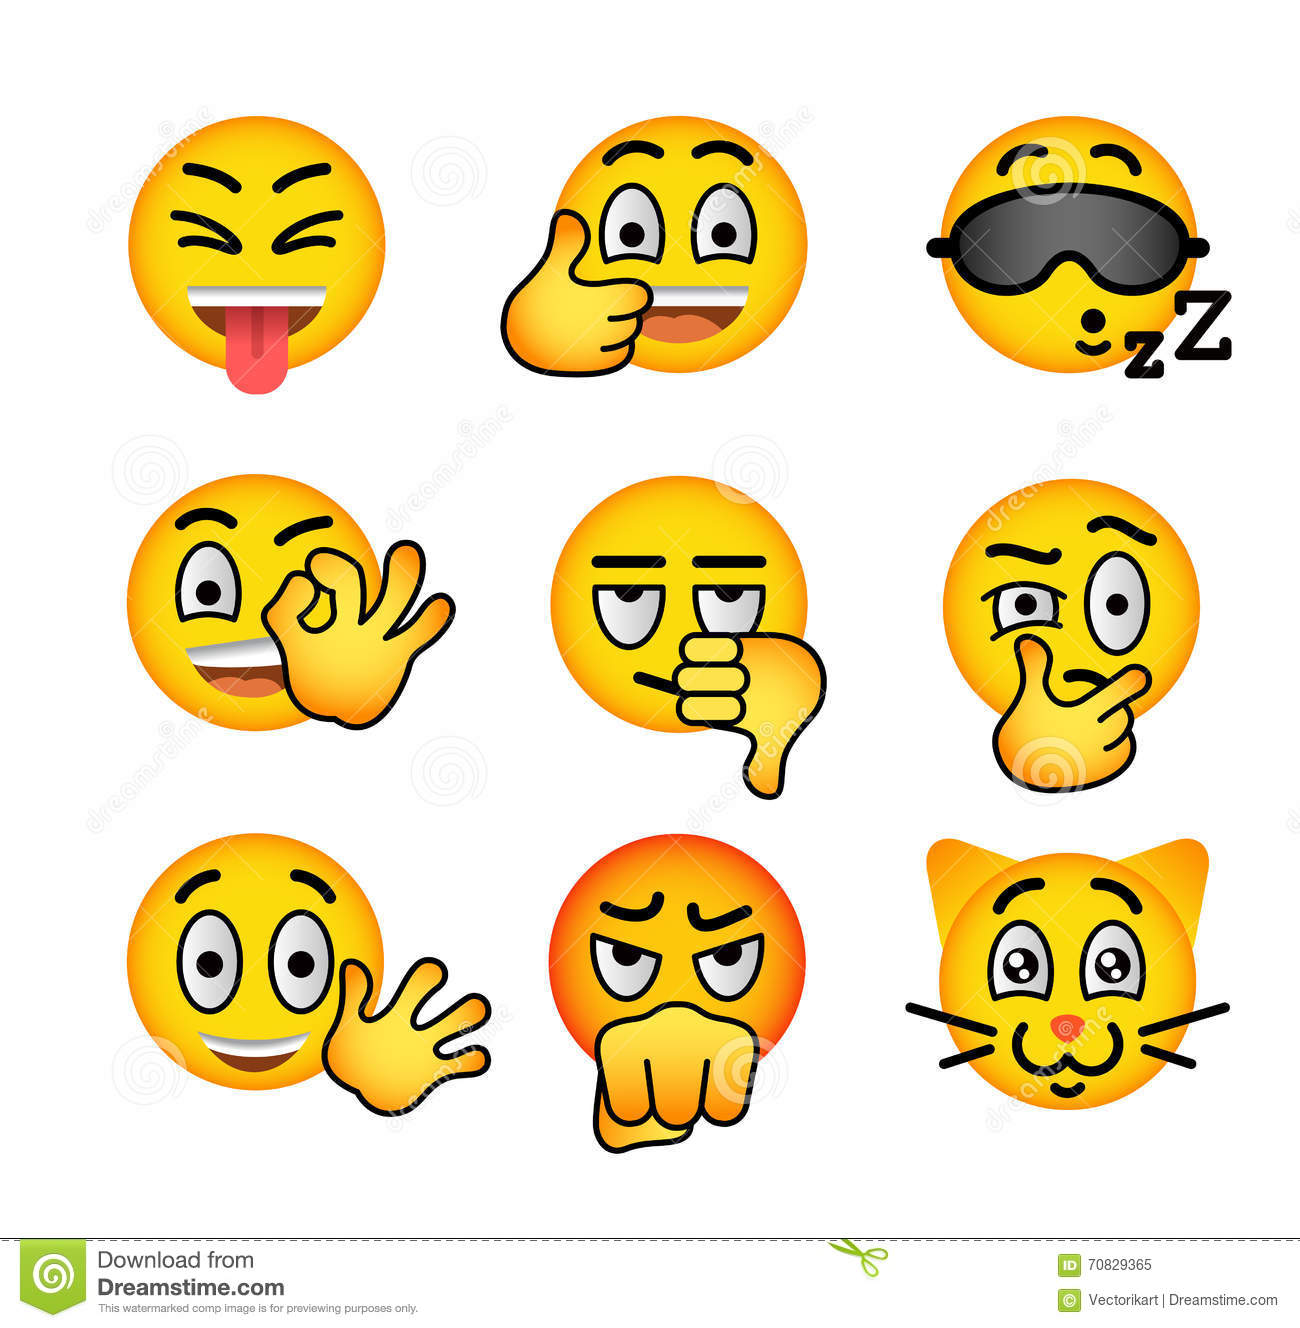 Smiley face emoji flat vector icons set stock vector smiley face emoji flat vector icons set buycottarizona Choice Image